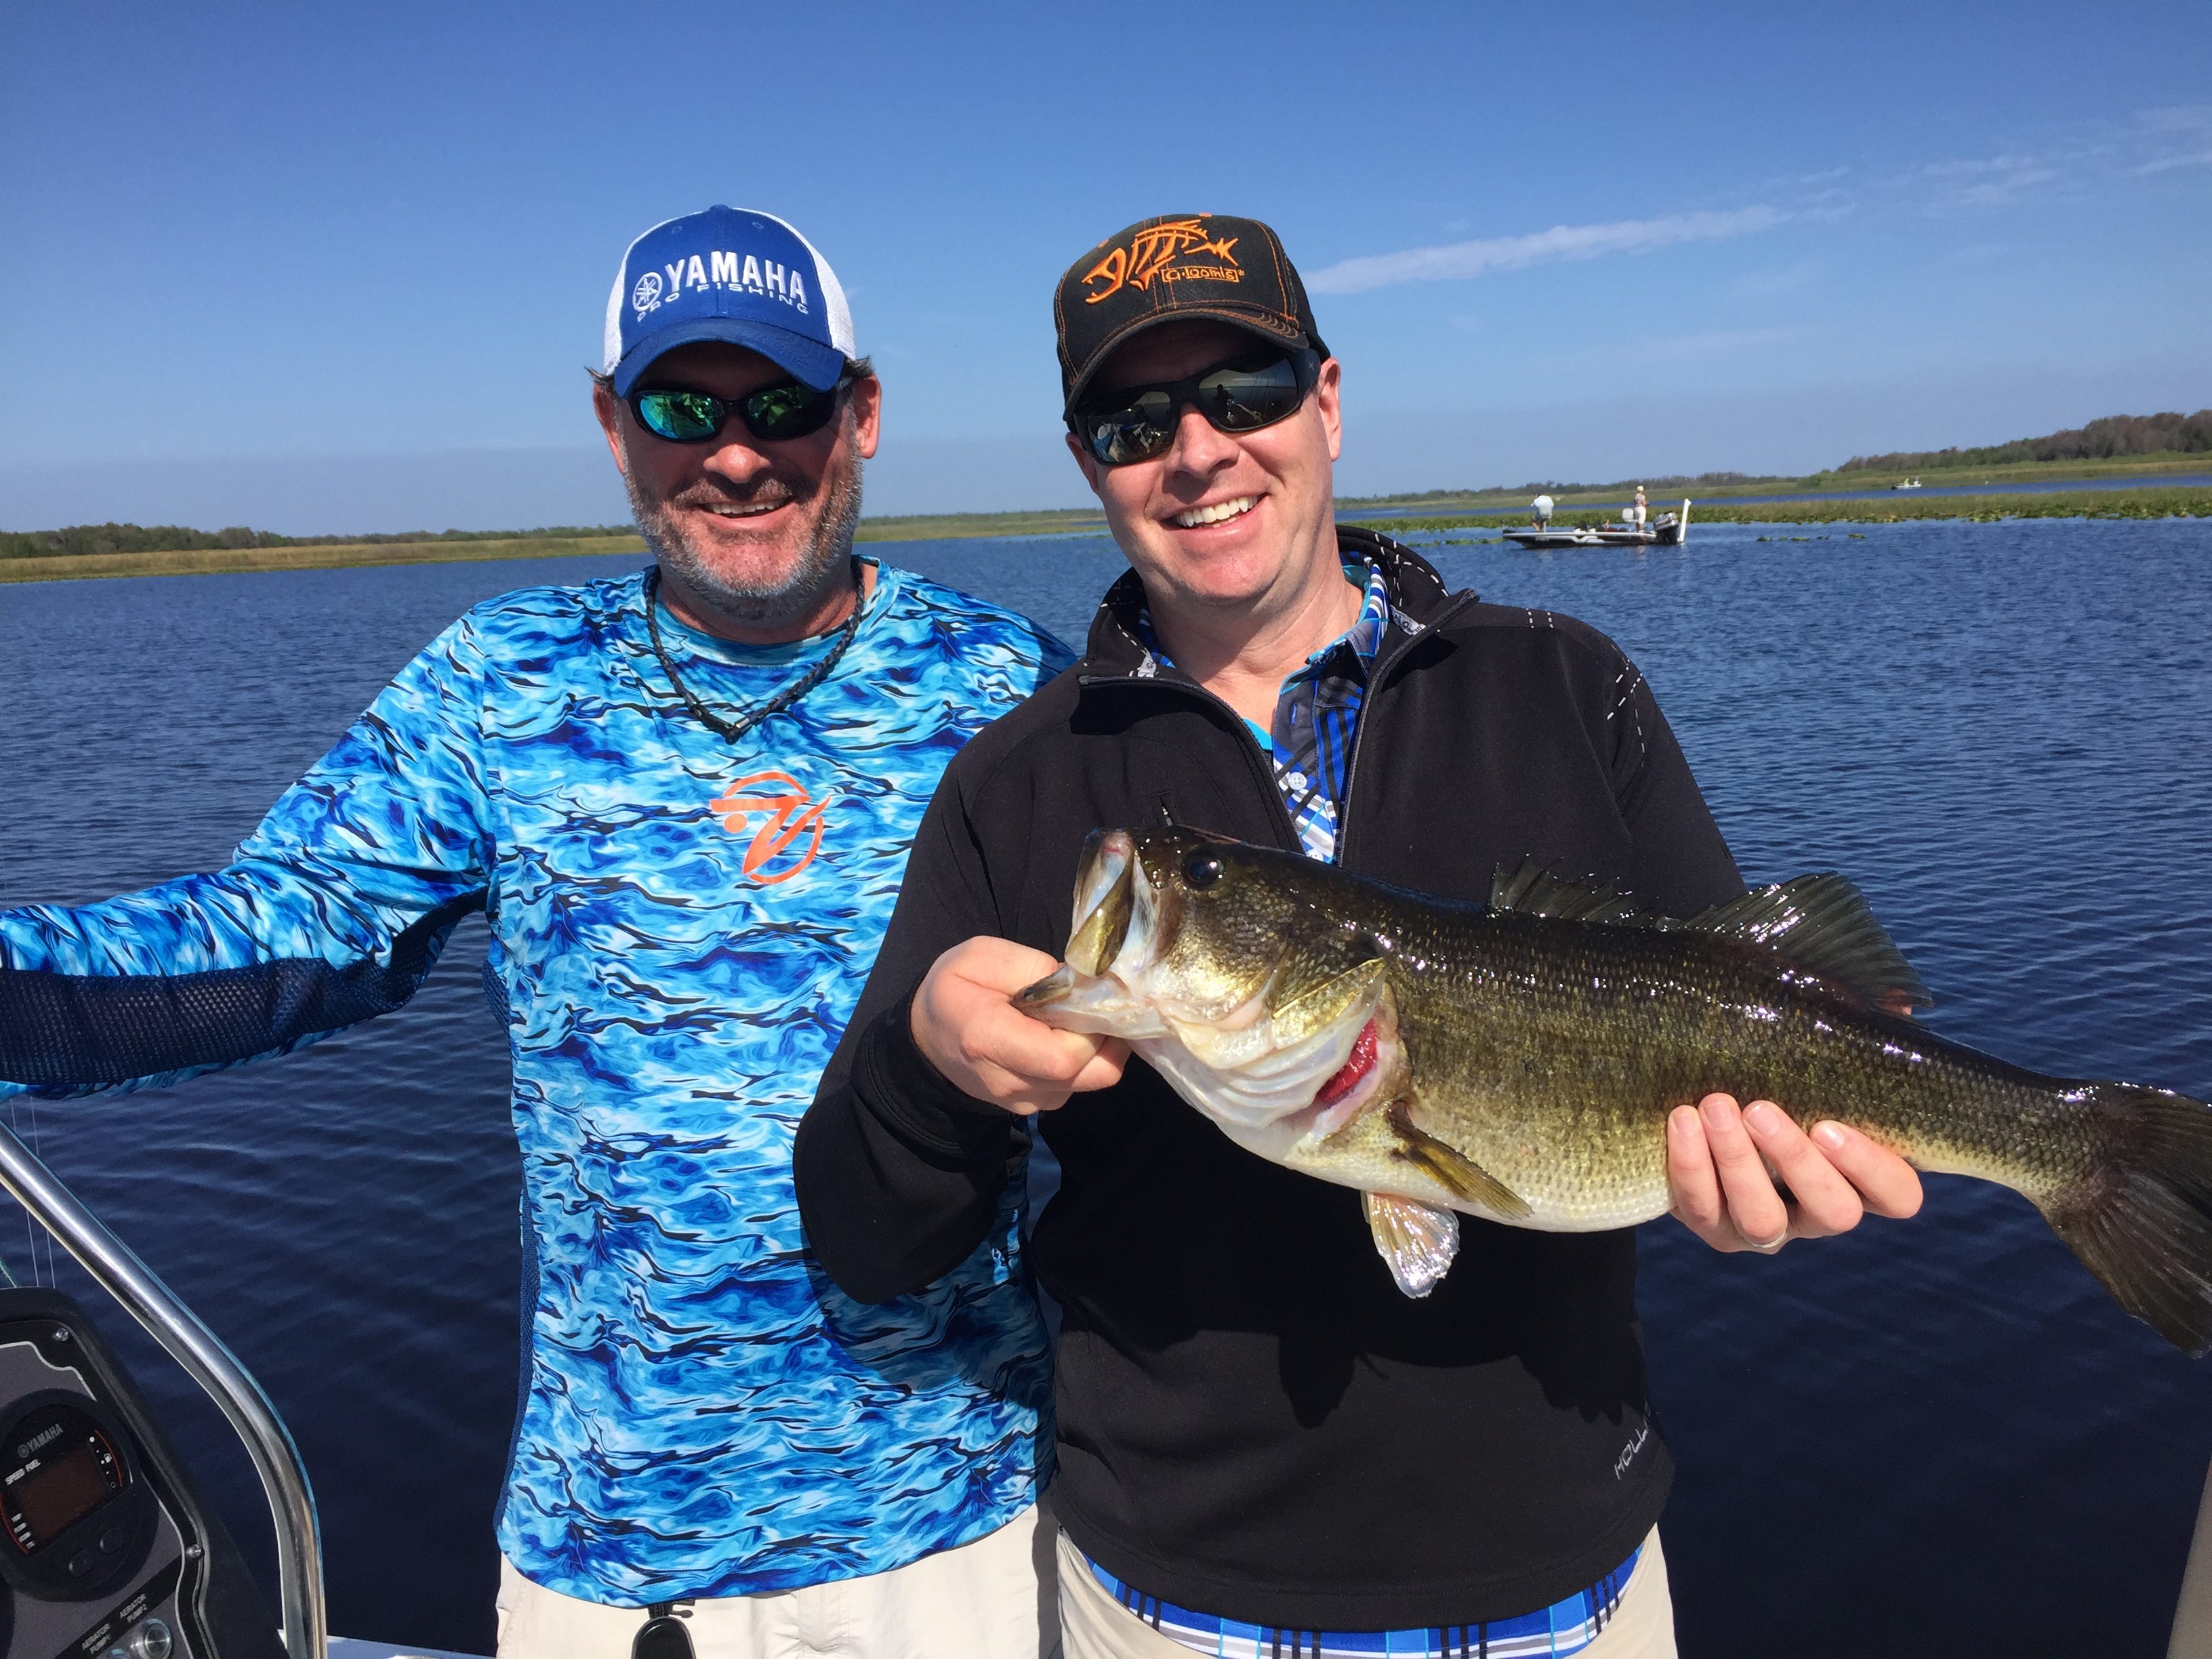 Tmc guide services central florida winter haven for Bass fishing guides orlando fl